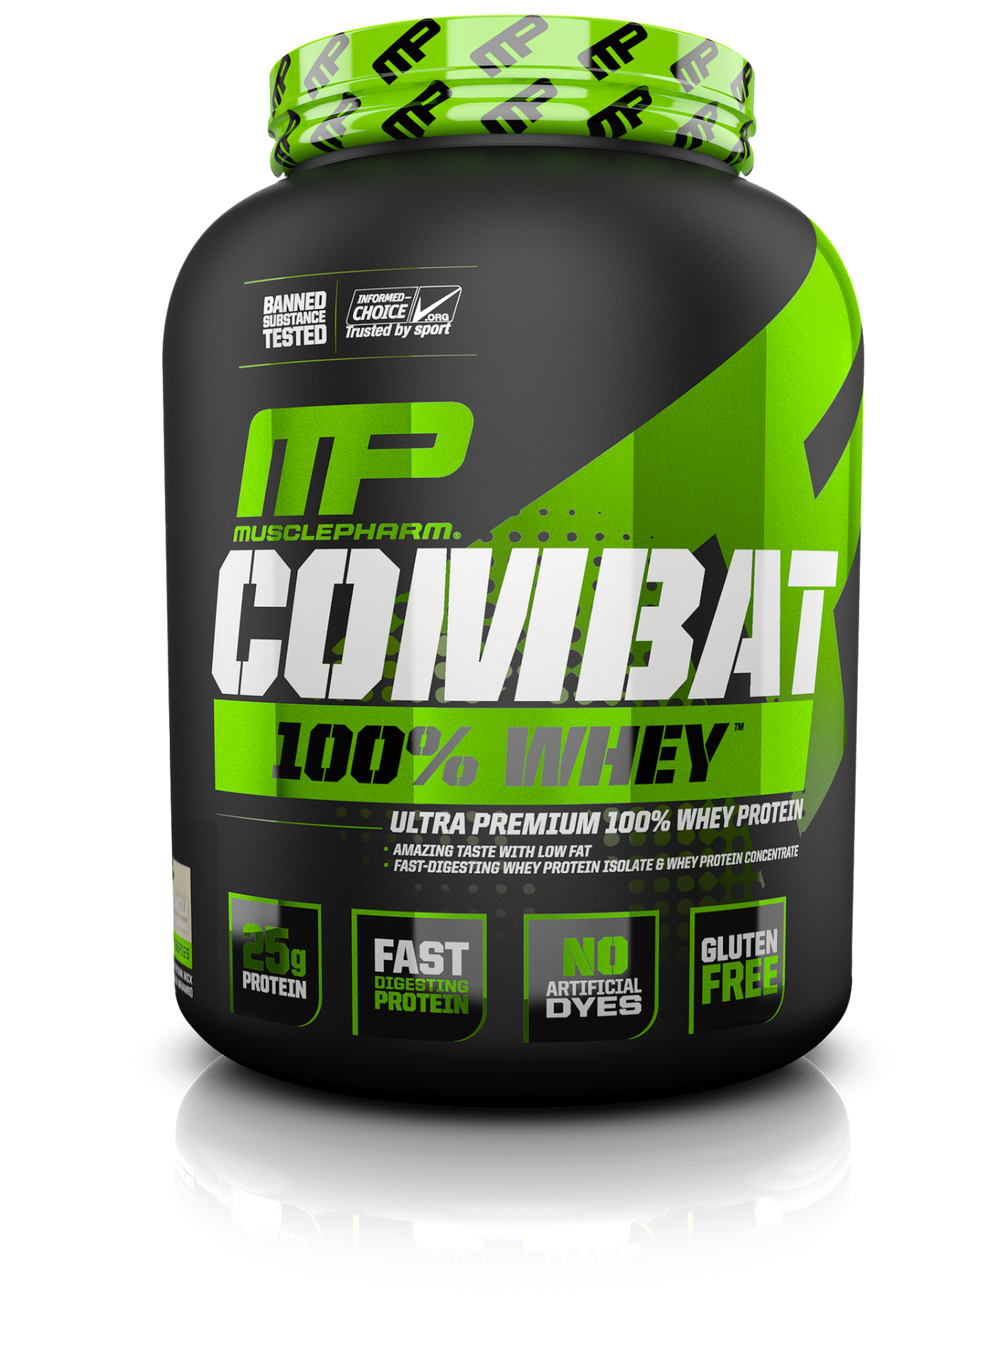 MusclePharm Combat 100%  Whey - Super Nutrition